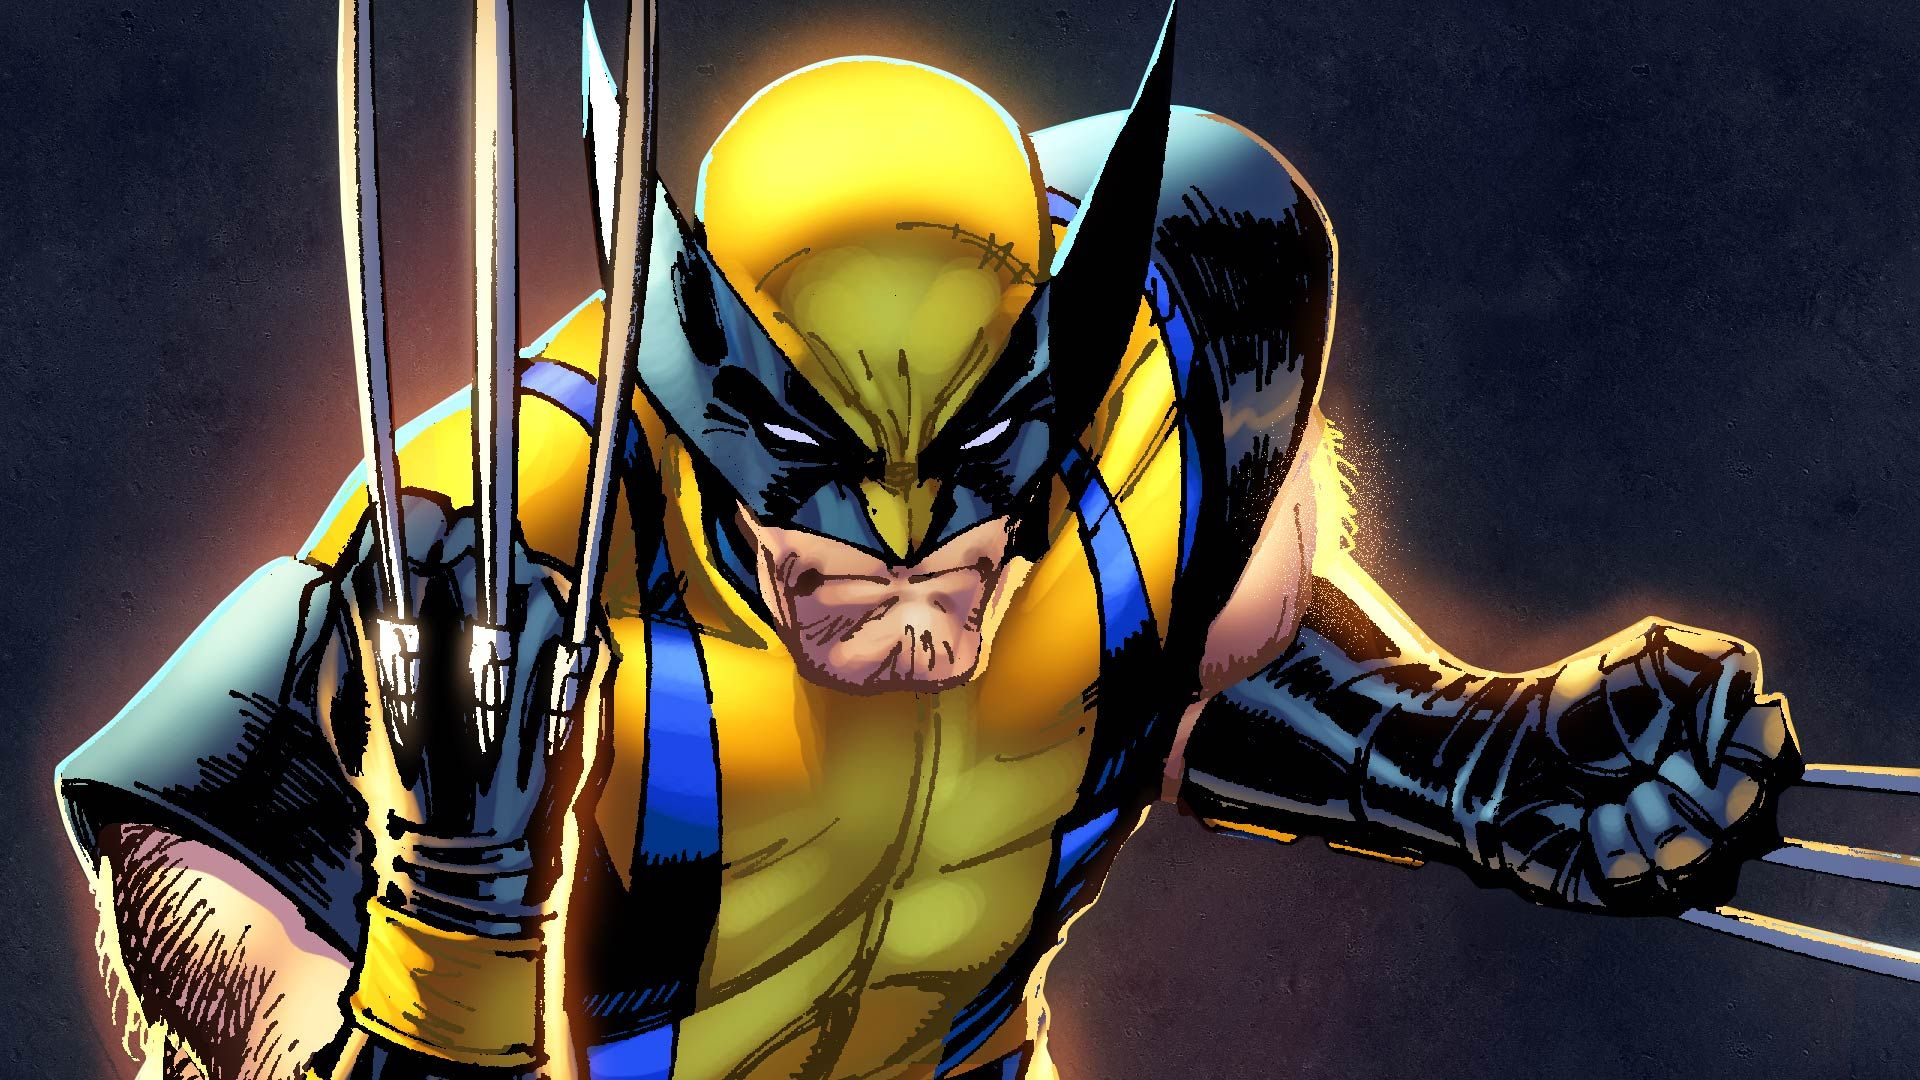 322 wolverine hd wallpapers backgrounds wallpaper abyss x men wolverine wallpapers wallpaper wolverine pics wallpapers wallpapers voltagebd Images